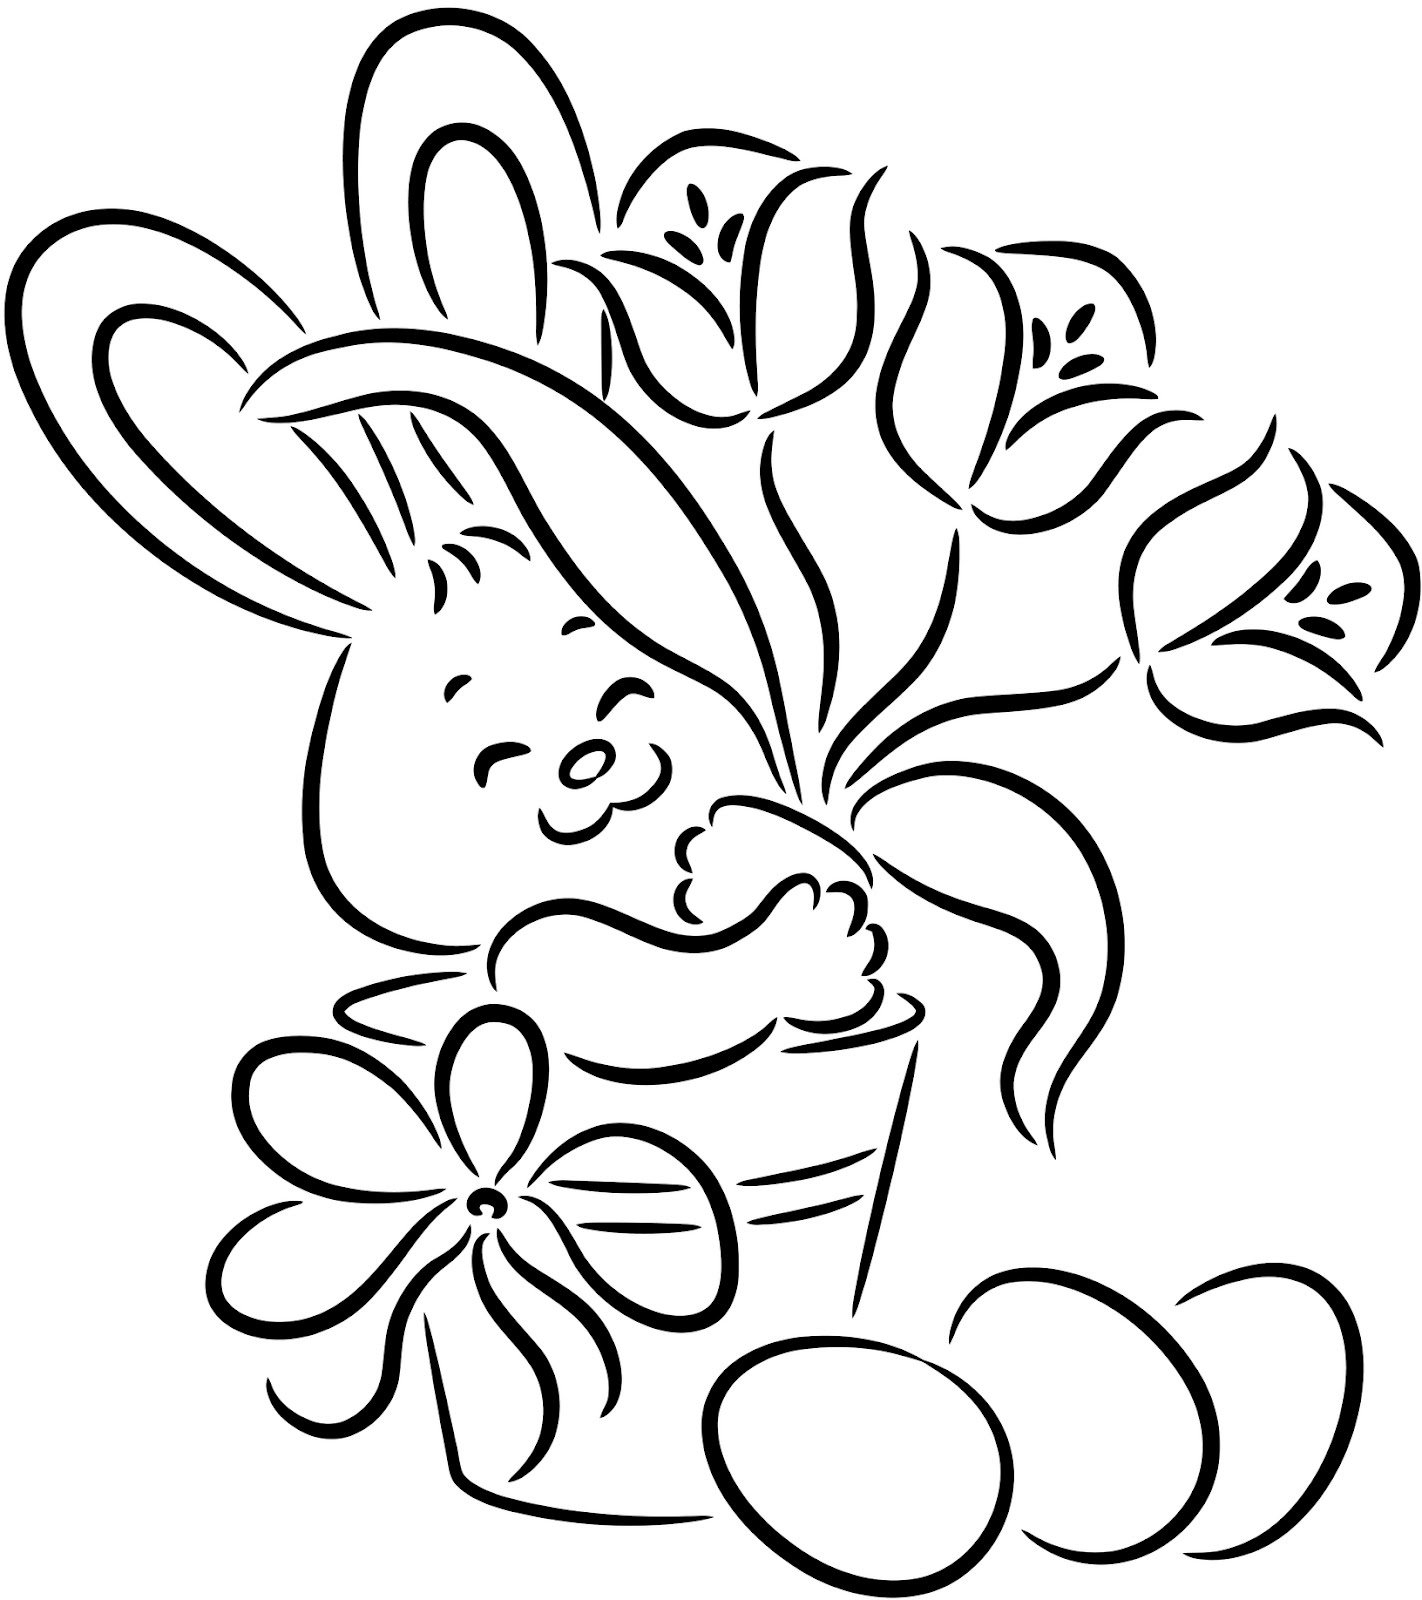 coloring easter bunnies easter bunny rabbit coloring pages coloring bunnies easter